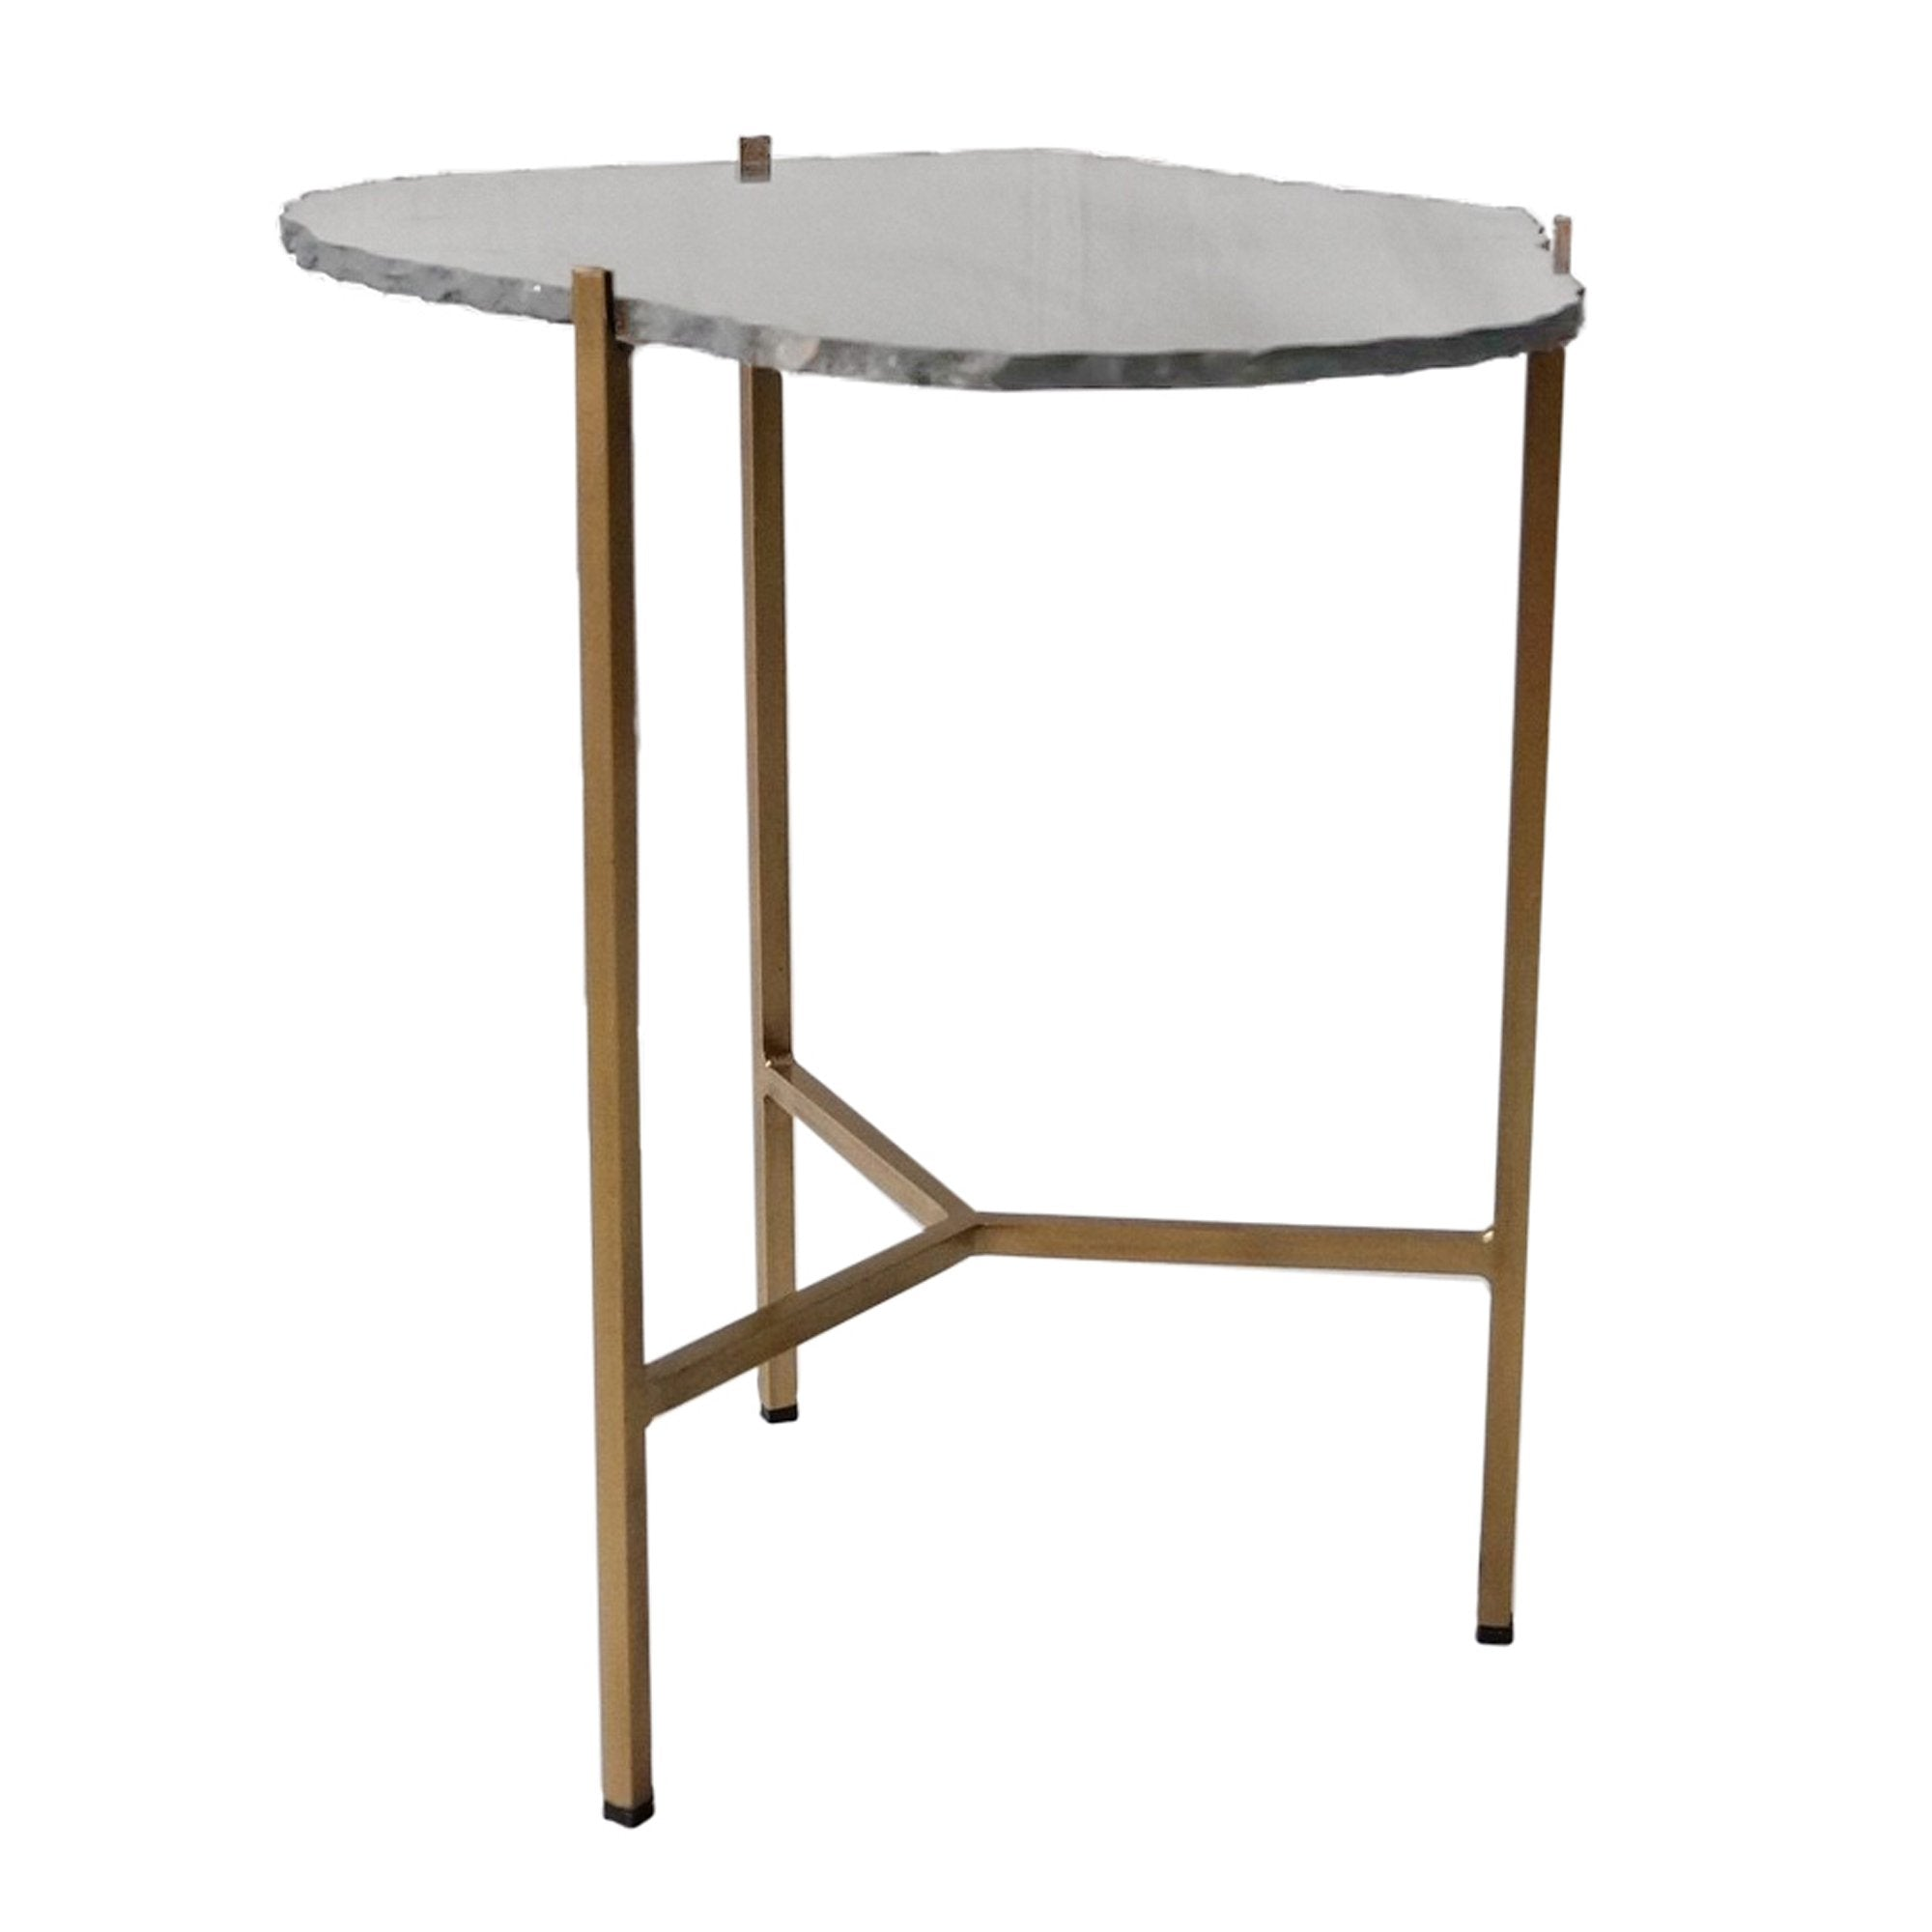 Picture of Earth Wind & Fire Tall Accent Table - Black Slate / Gold Frame